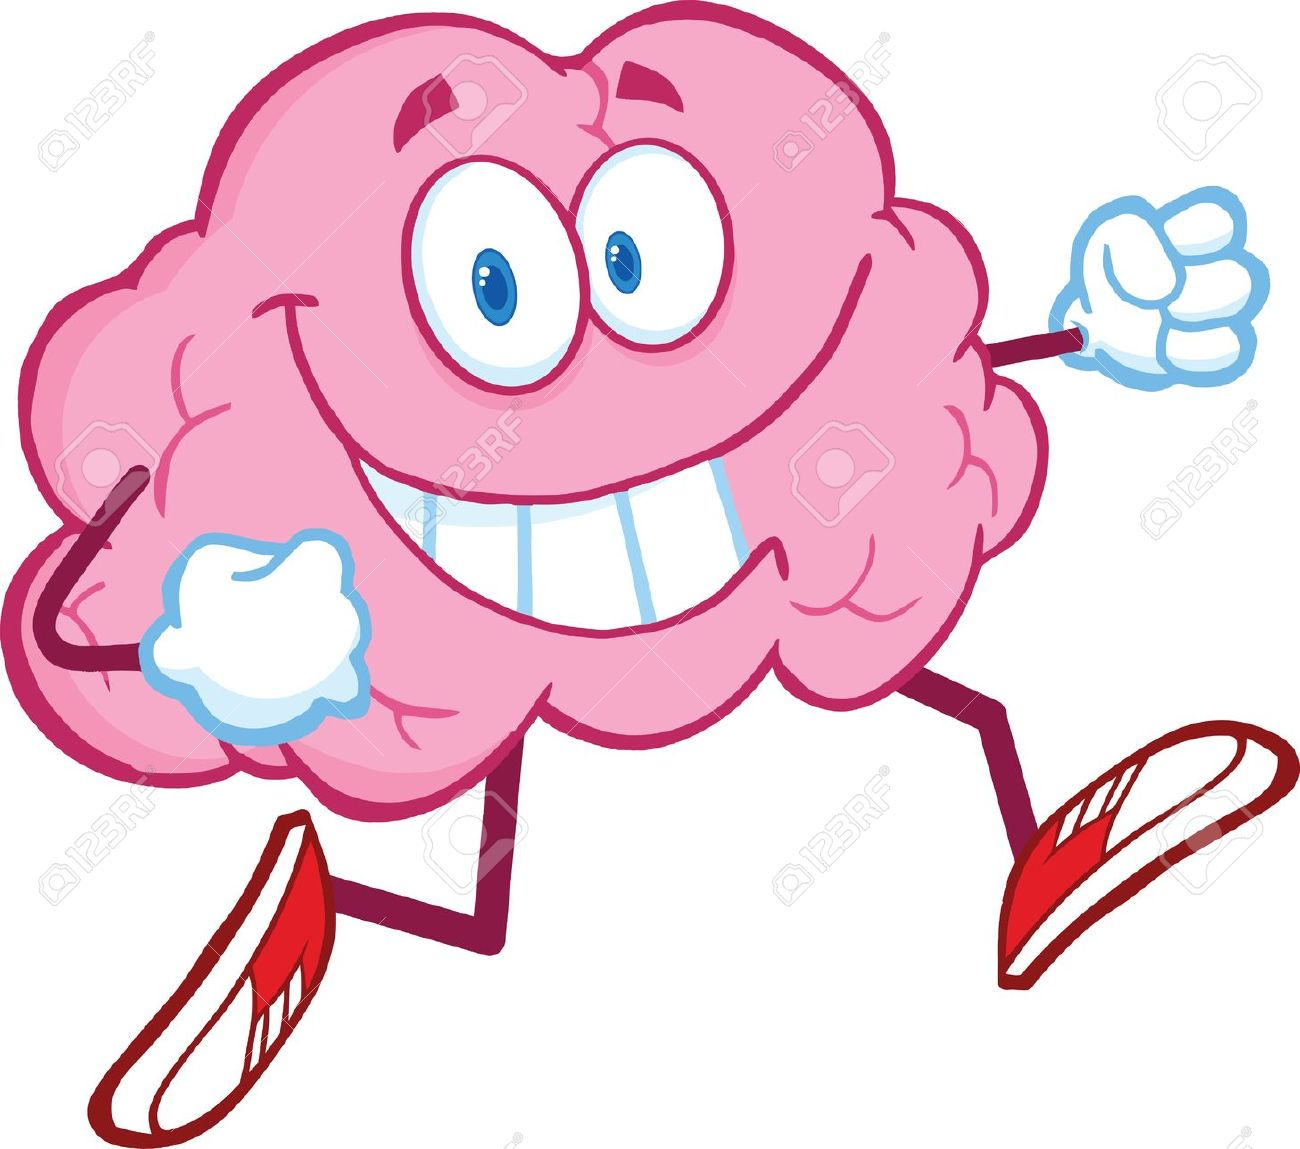 Cartoon Picture Of A Brain   Free download best Cartoon Picture Of ... for Smart Cartoon Brain  257ylc